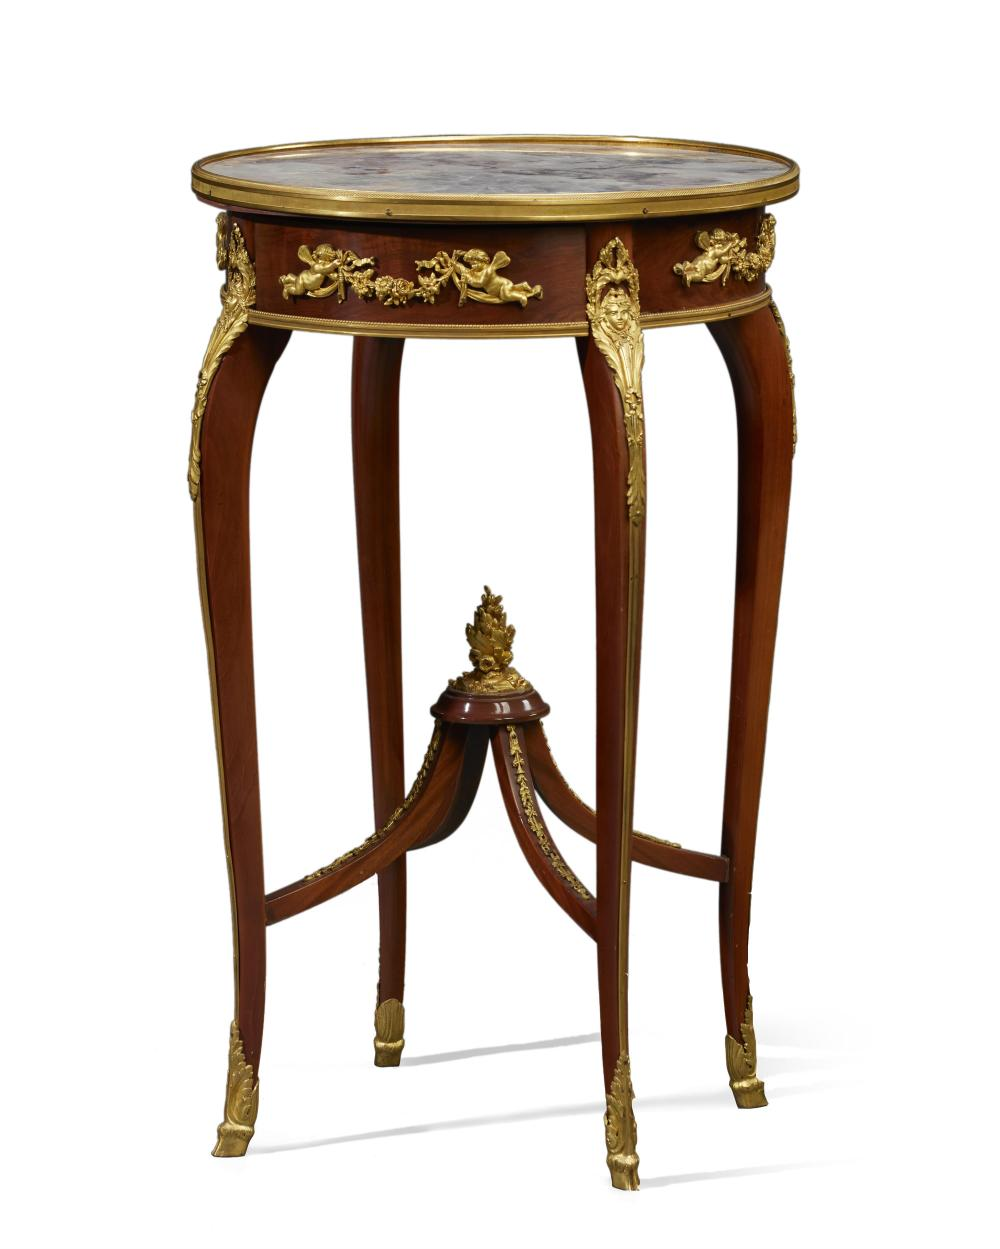 A François Linke transitional marble and bronze gueridon table